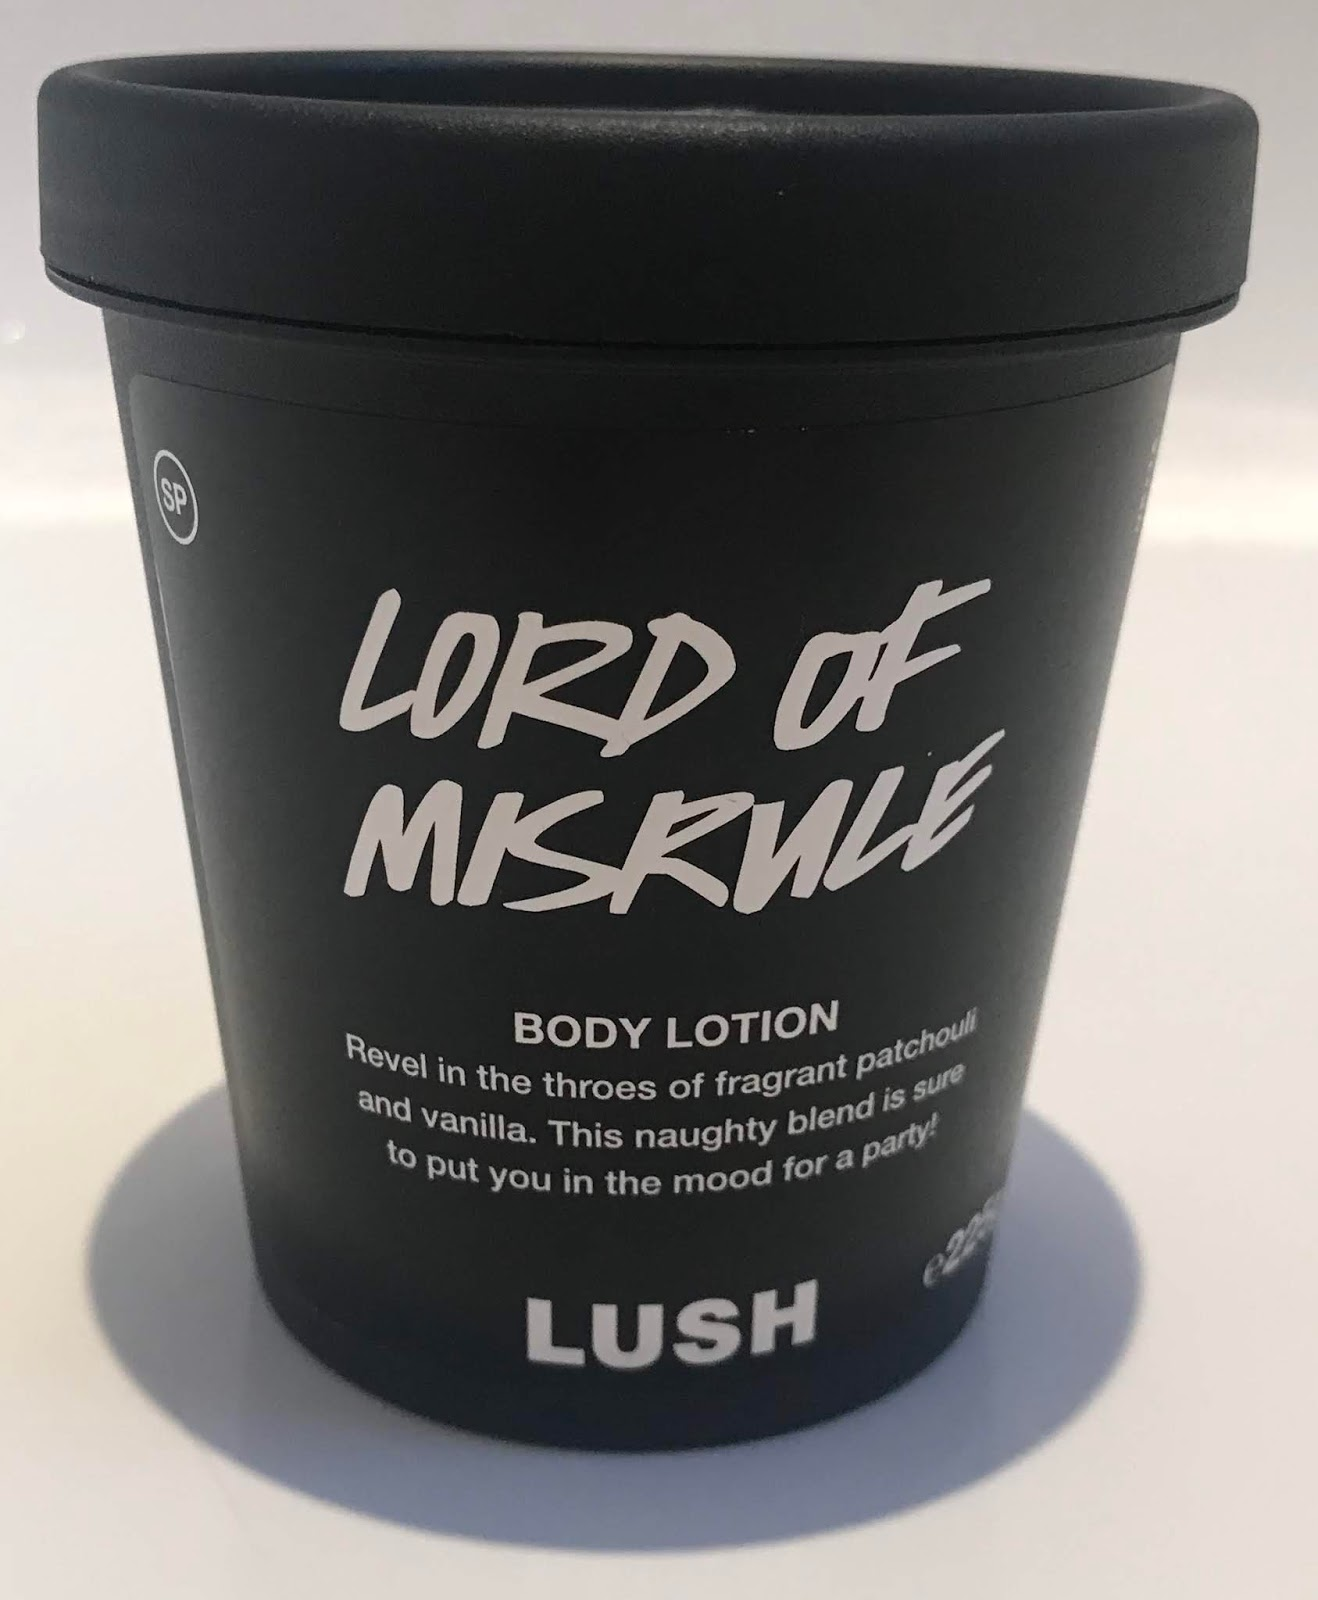 All Things Lush UK Lord Misrule Body Lotion